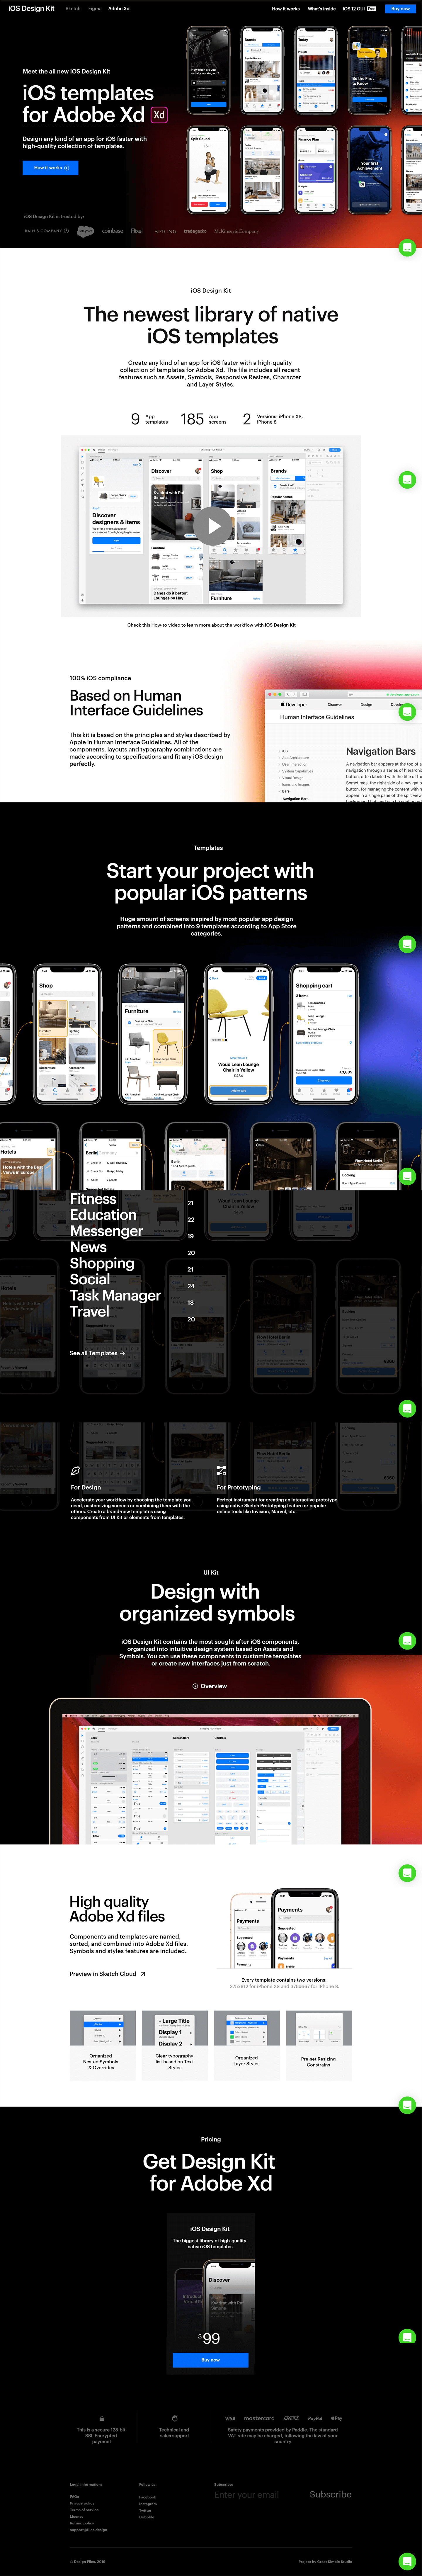 The newest library of native iOS templates. Create any kind of an app for iOS faster with a high-quality collection of templates for Adobe Xd. The file includes all recent features such as Assets, Symbols, Responsive Resizes, Character and Layer Styles.